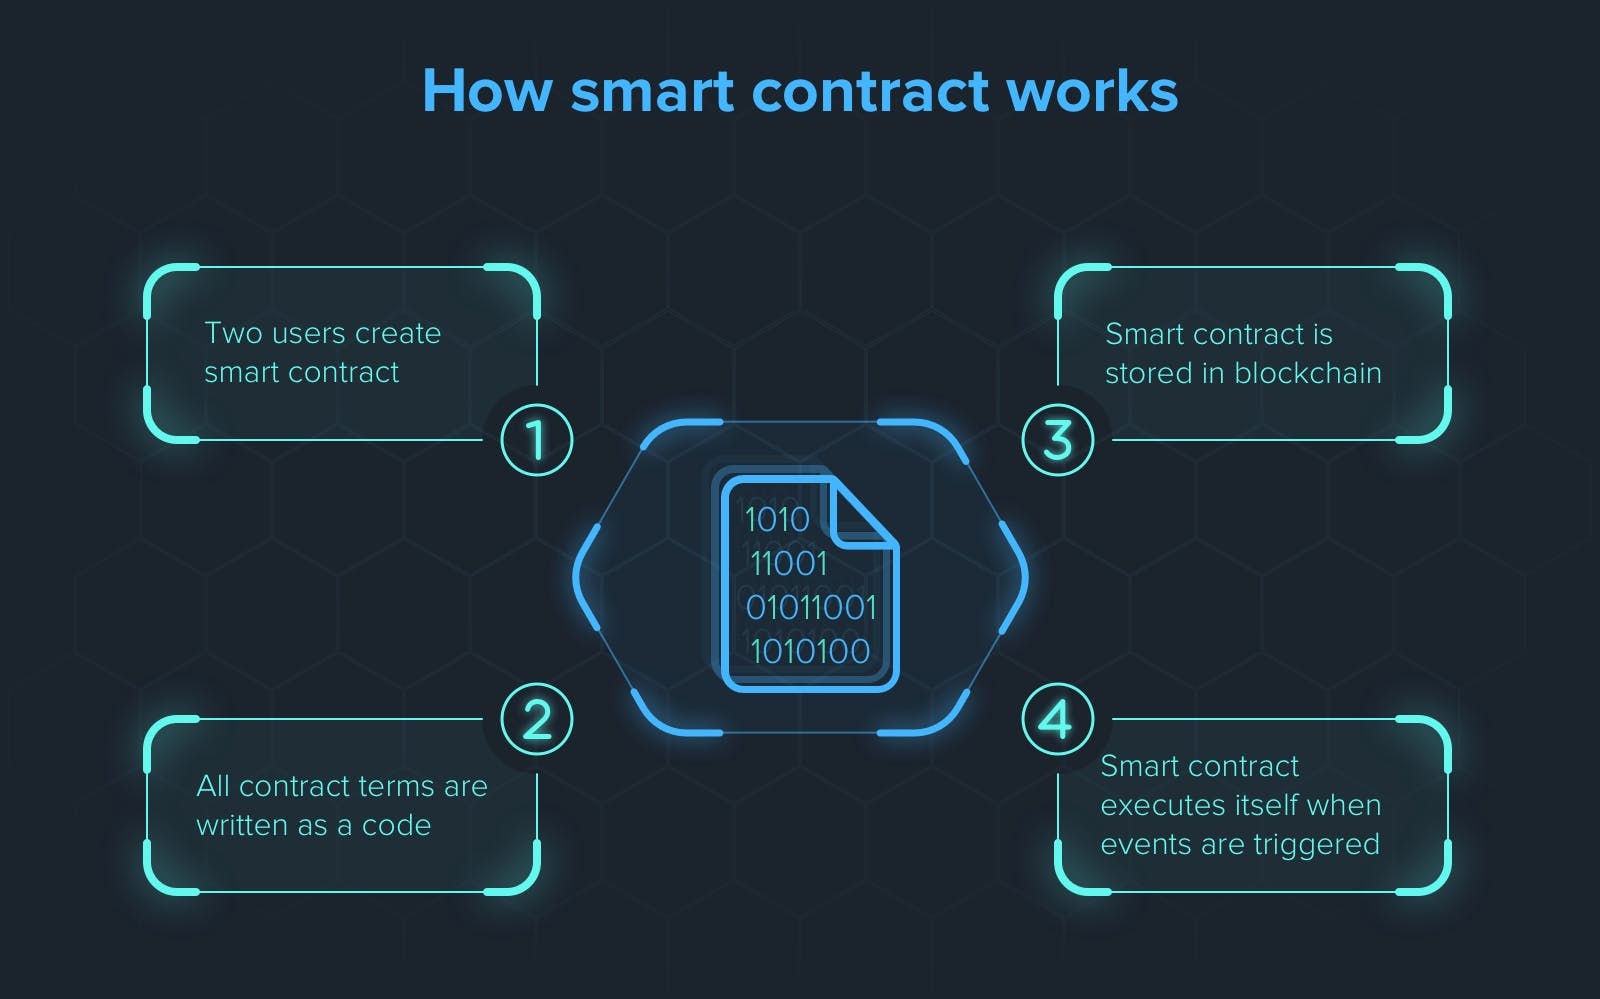 smart-contract-works-1.png